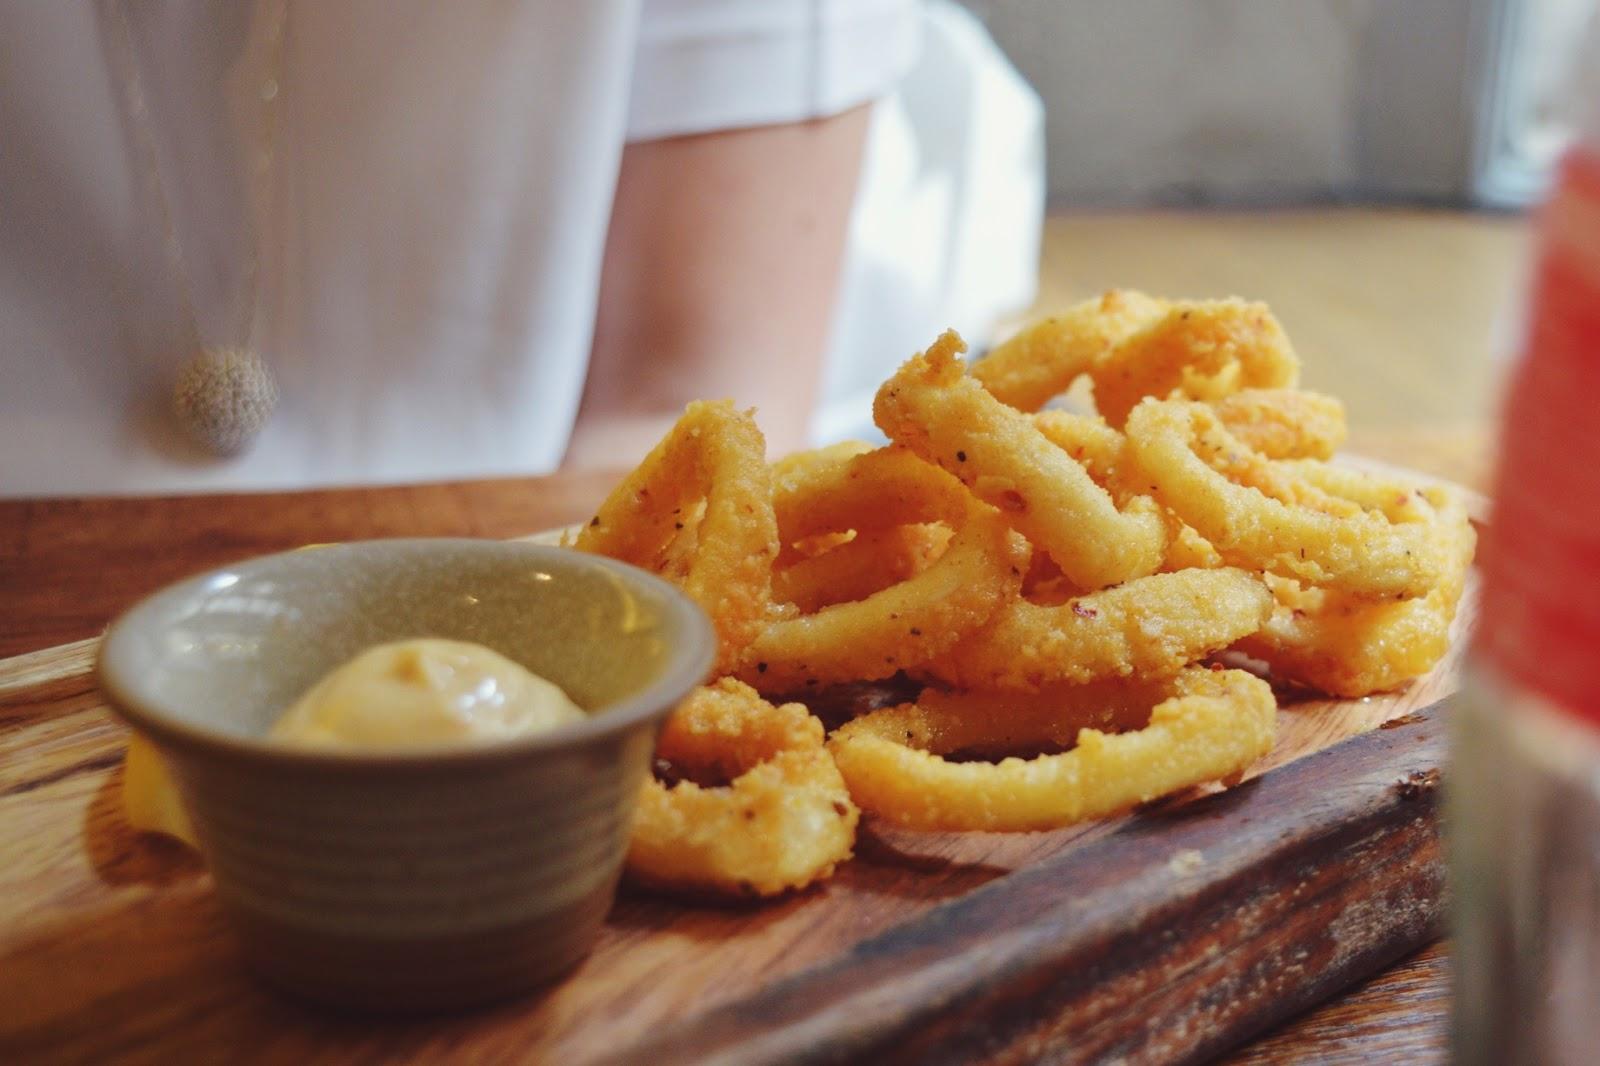 Wildwood Salisbury review, FashionFake, UK food blogs, calamari